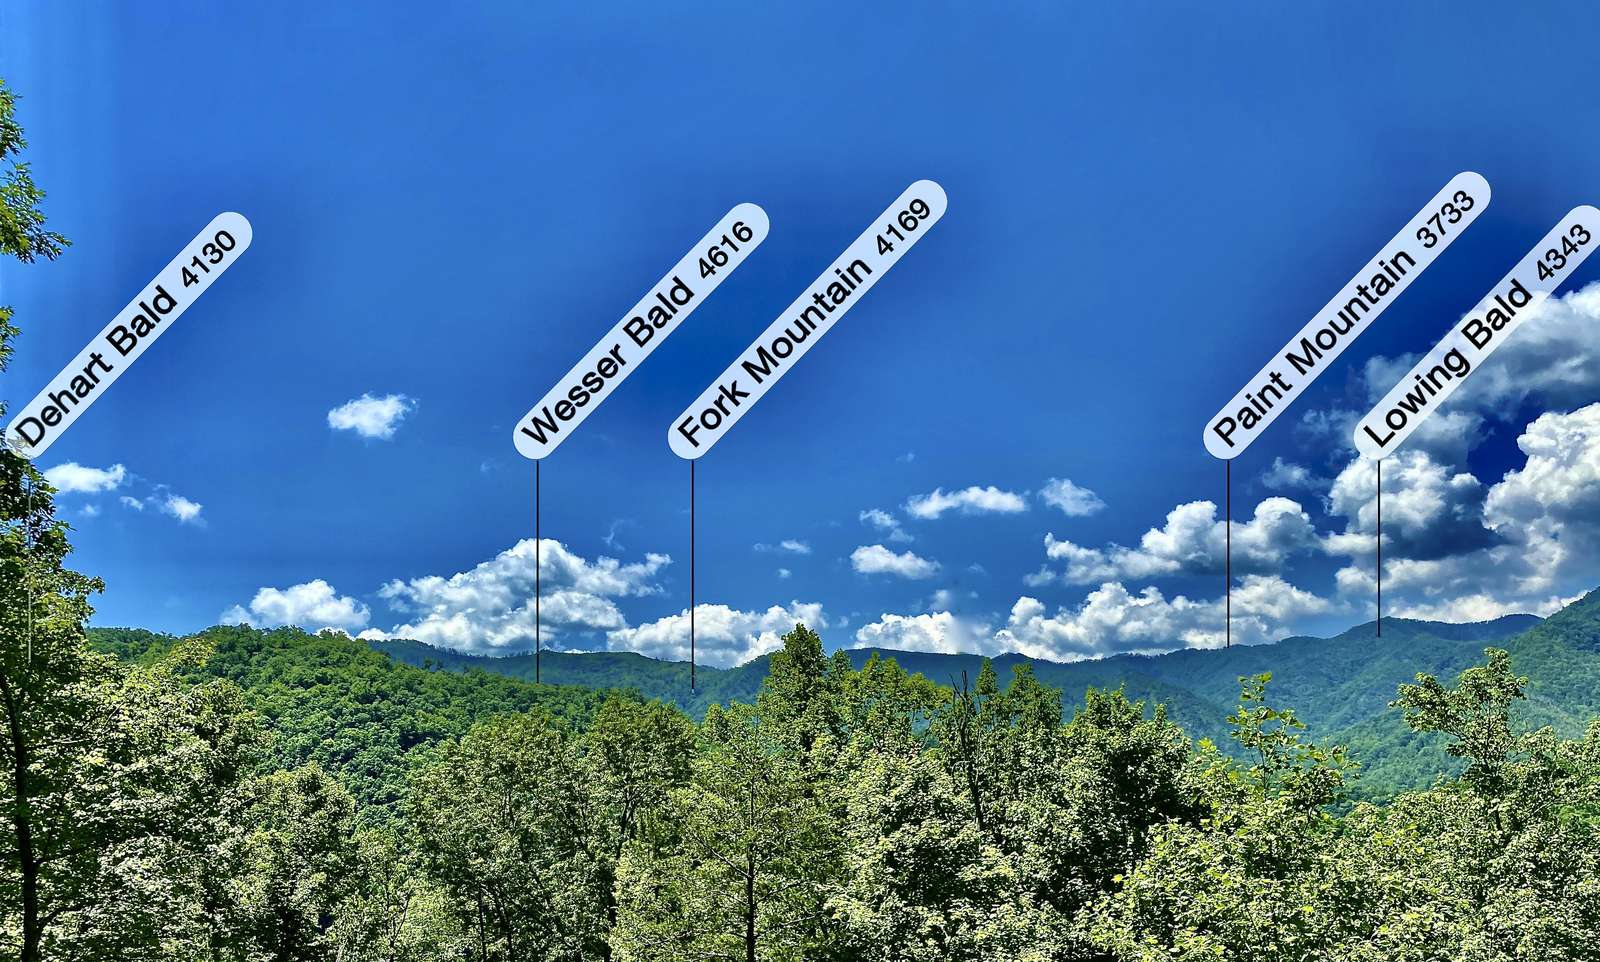 Looking out over the Nantahala National Forest! (If you bring Binoculars, you will see the Wesser Bald Fire Tower). You can hike to the Fire Tower - along a portion of the A.T.